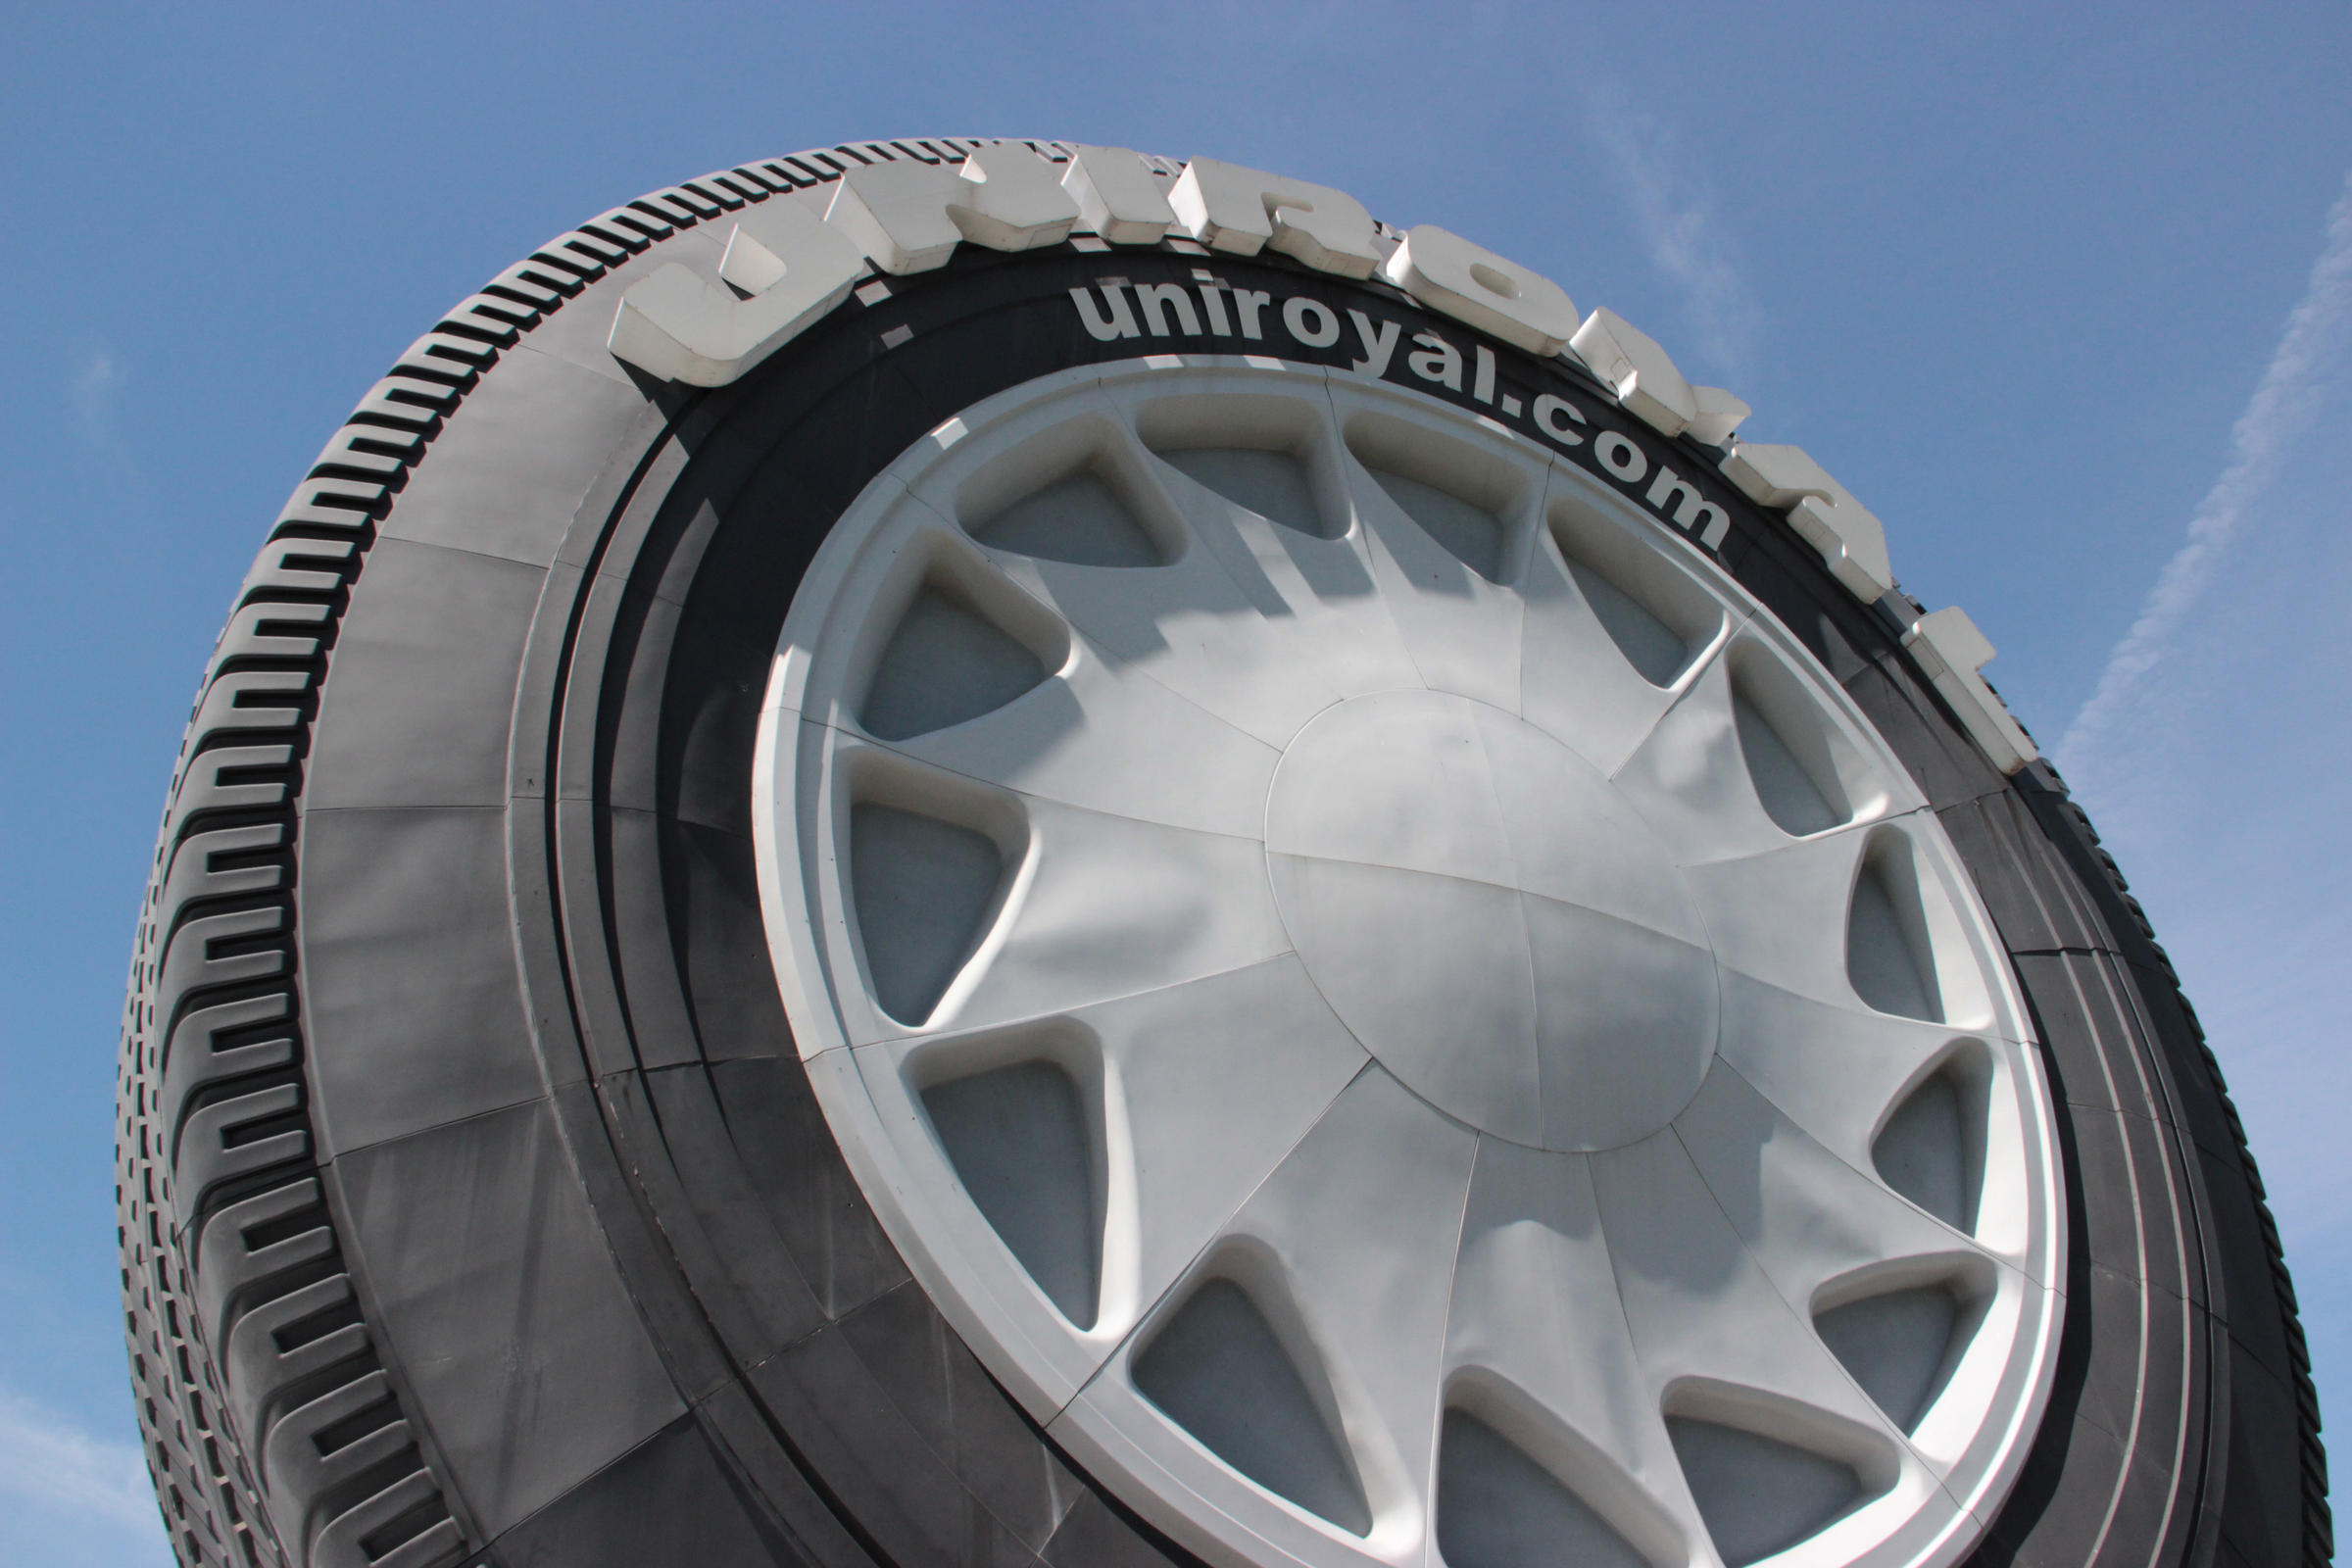 Here S What It S Like Inside And On Top Of The Giant Uniroyal Tire